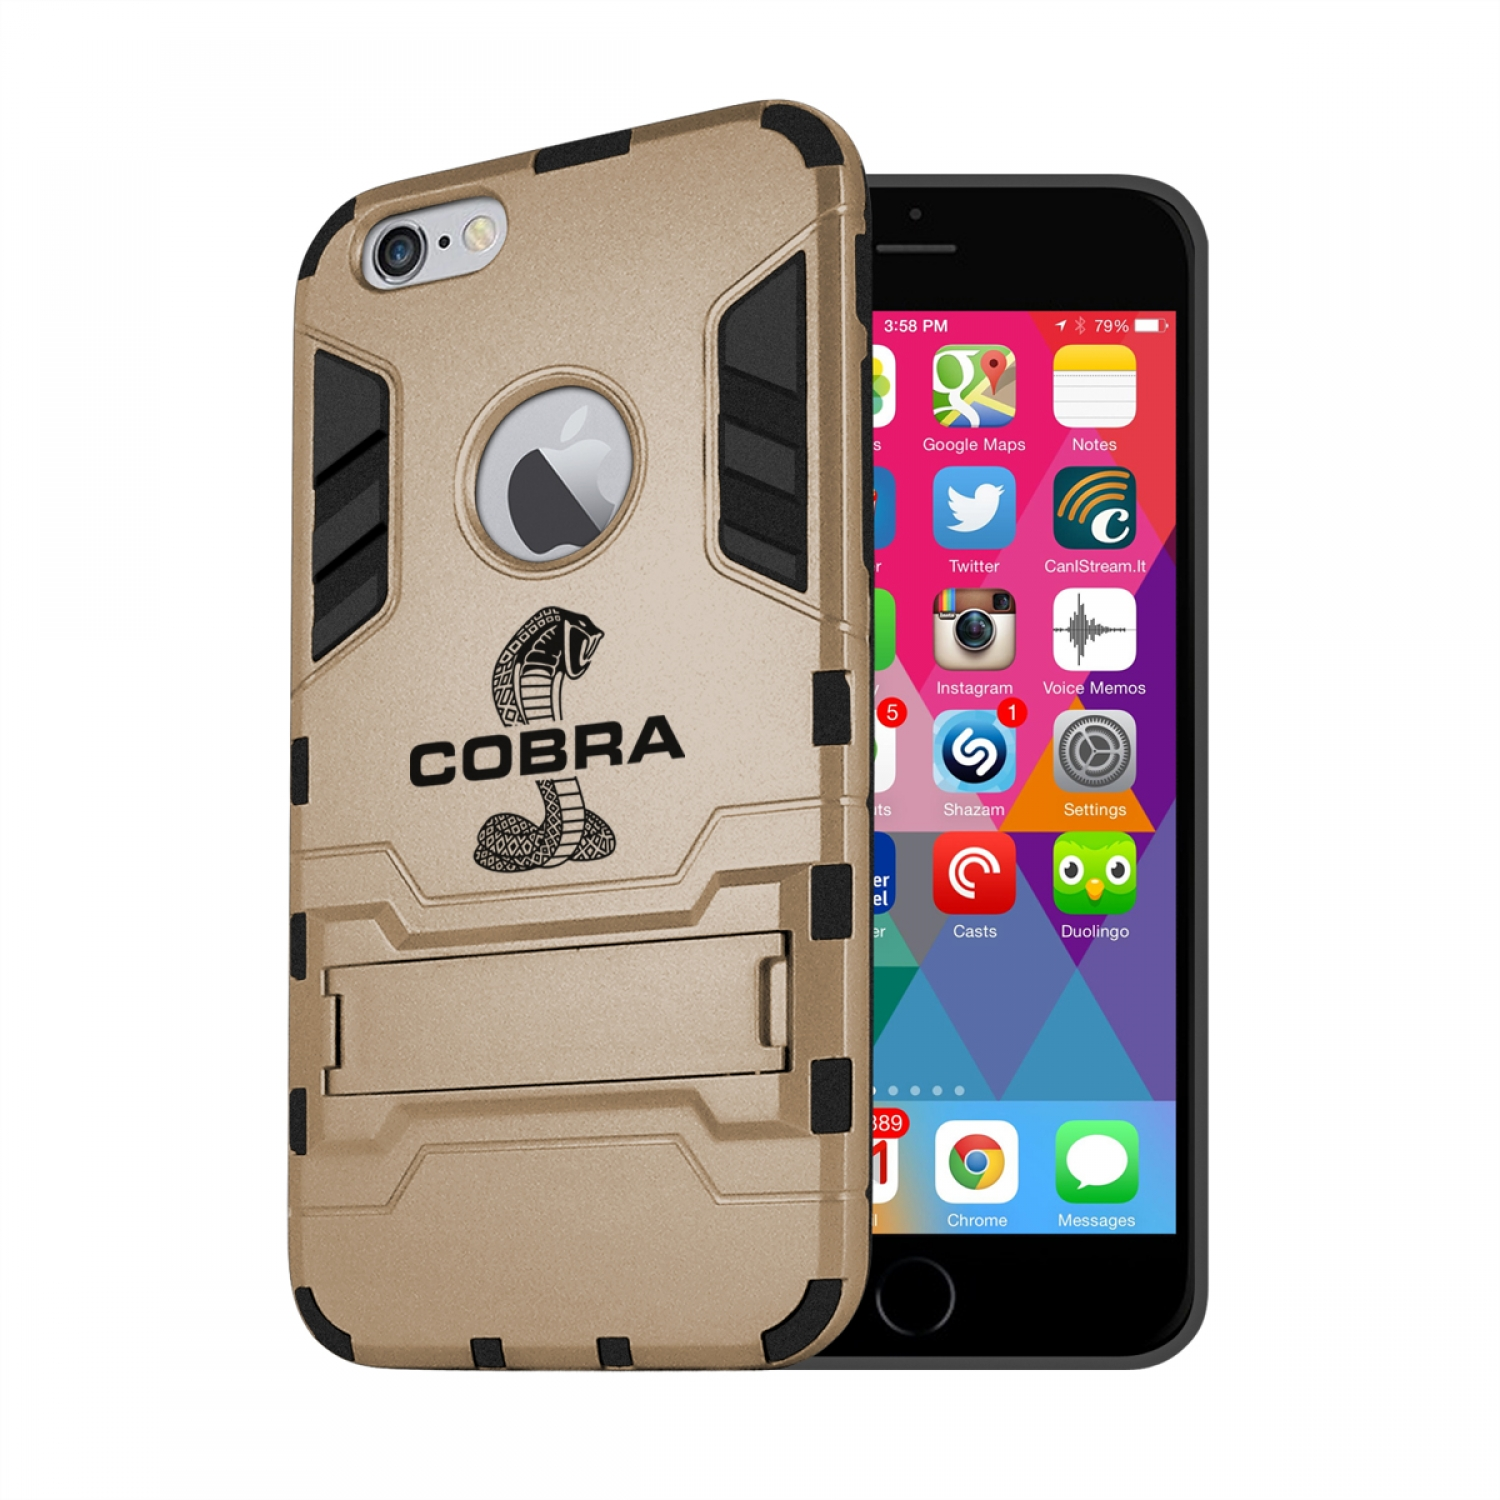 Ford Mustang Cobra iPhone 6 6s Shockproof TPU ABS Hybrid Golden Phone Case